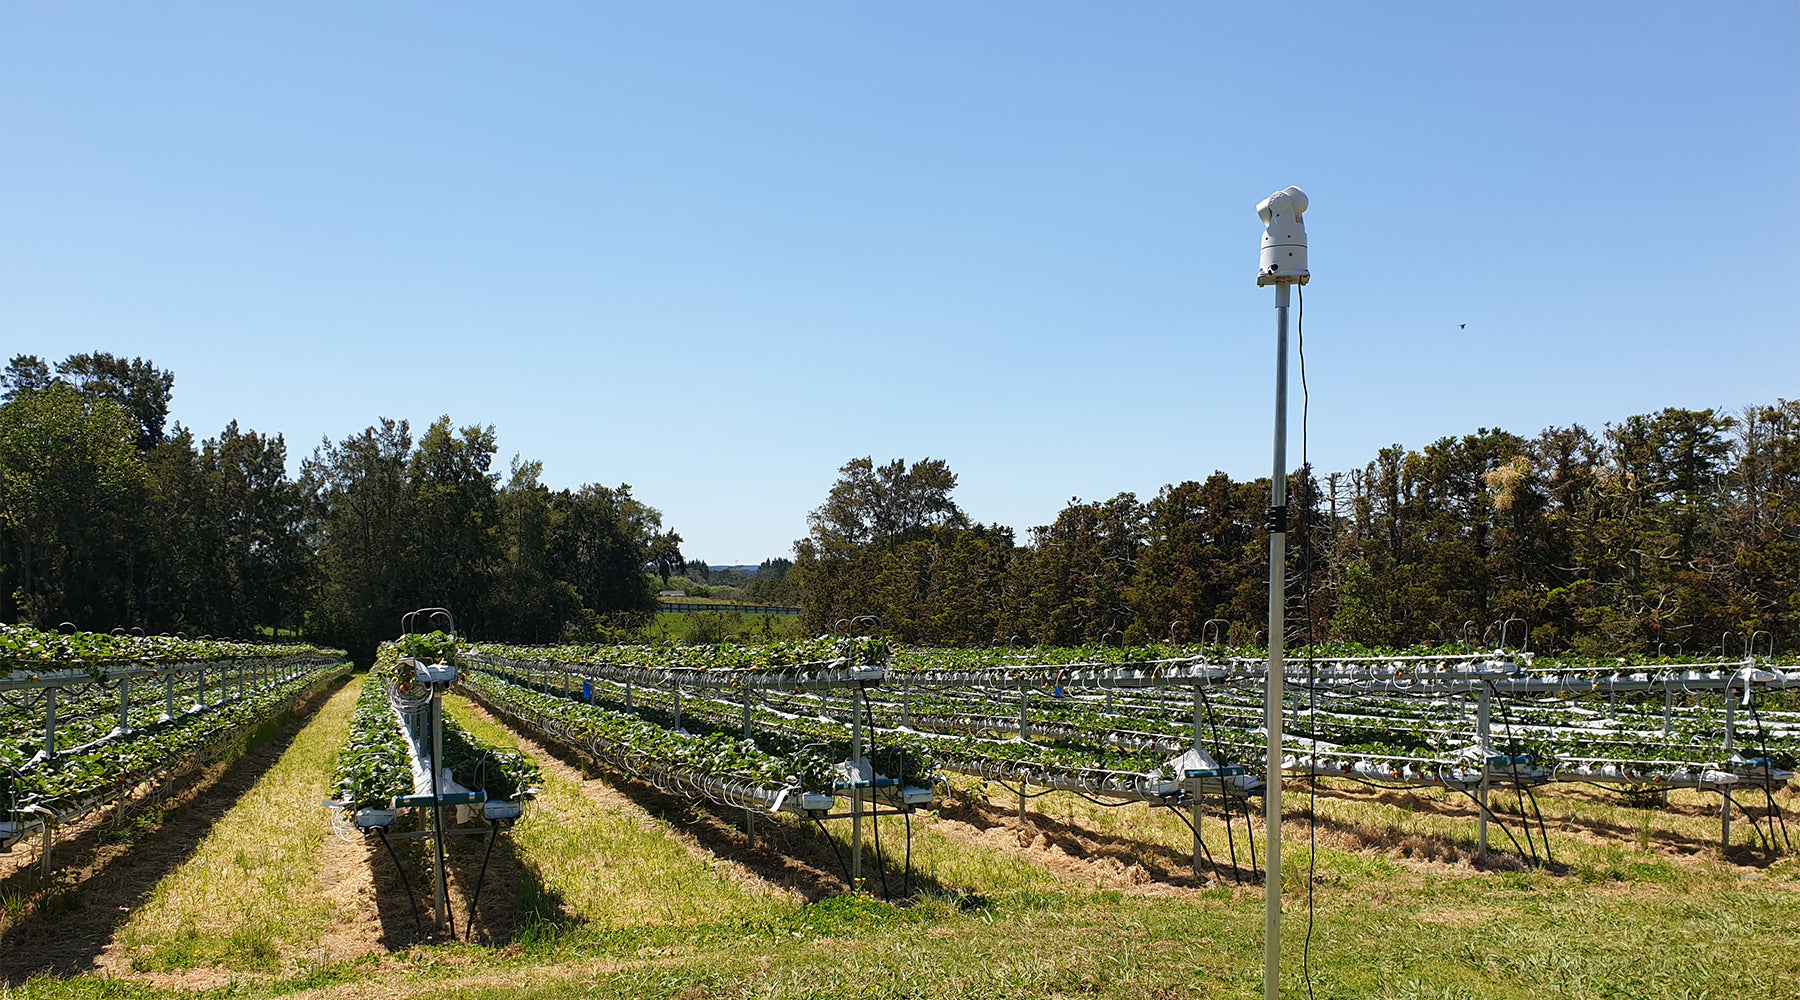 Laser bird deterrents for crops and vineyards – it's now a reality